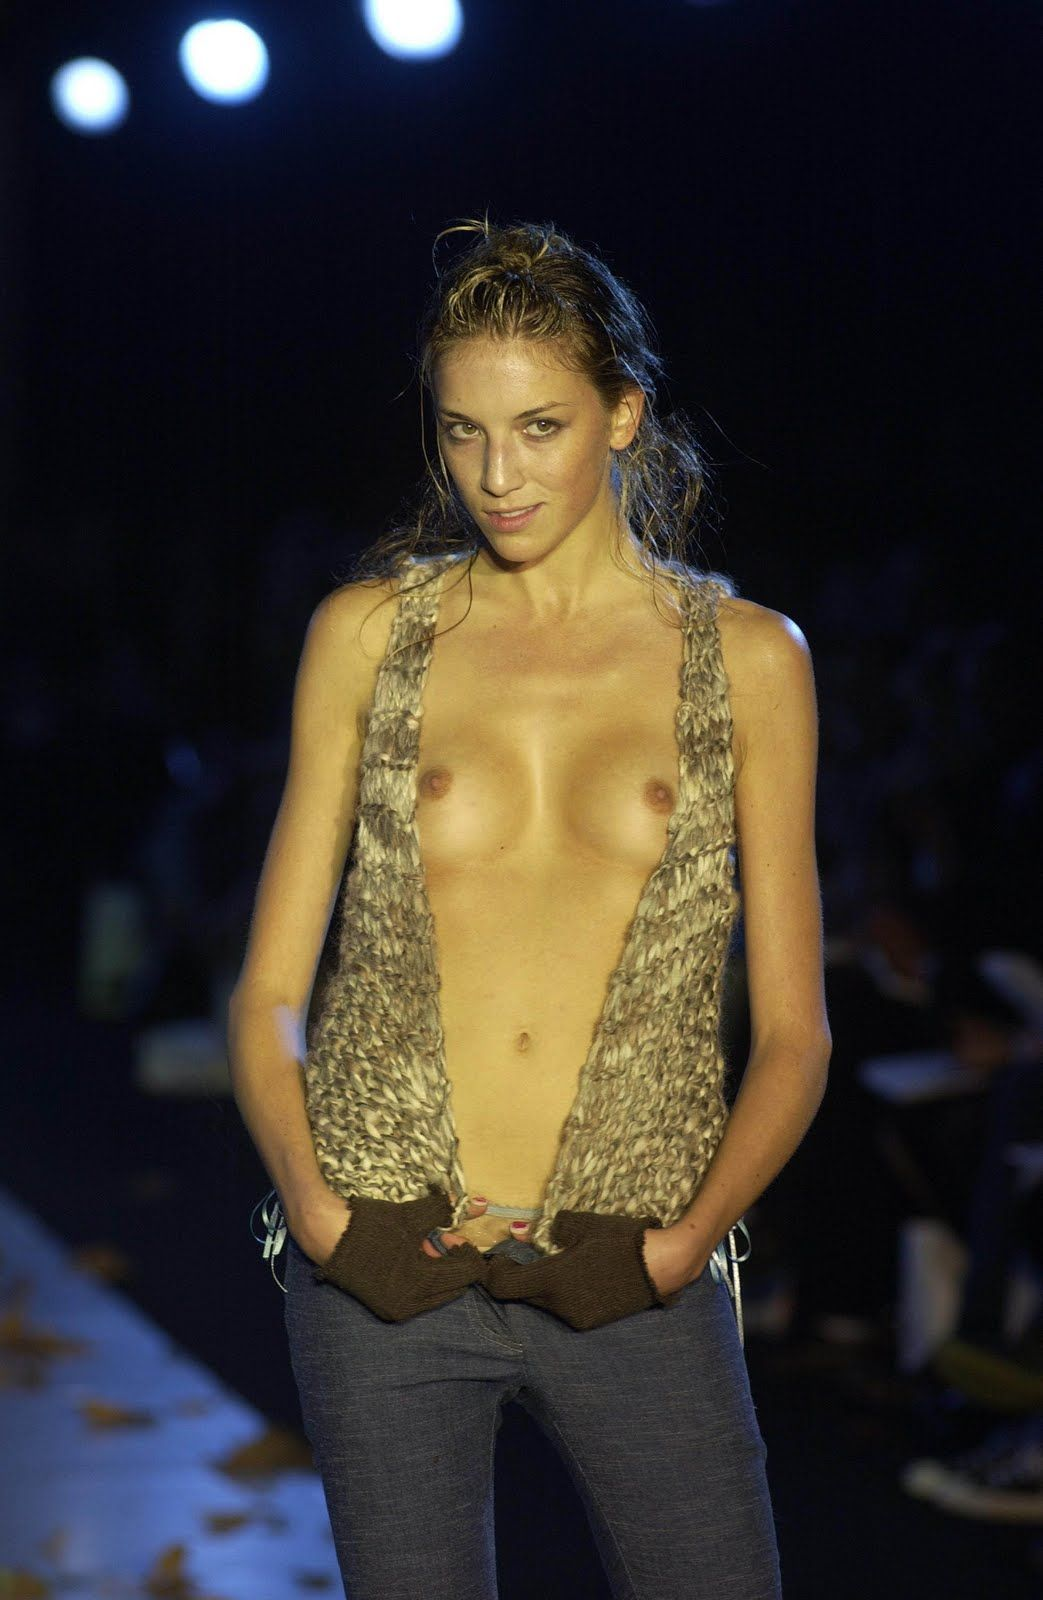 naked on the catwalk Naked catwalk and nude runway pics - Fashion show oops photo - Naked and  nude in public pics and photos